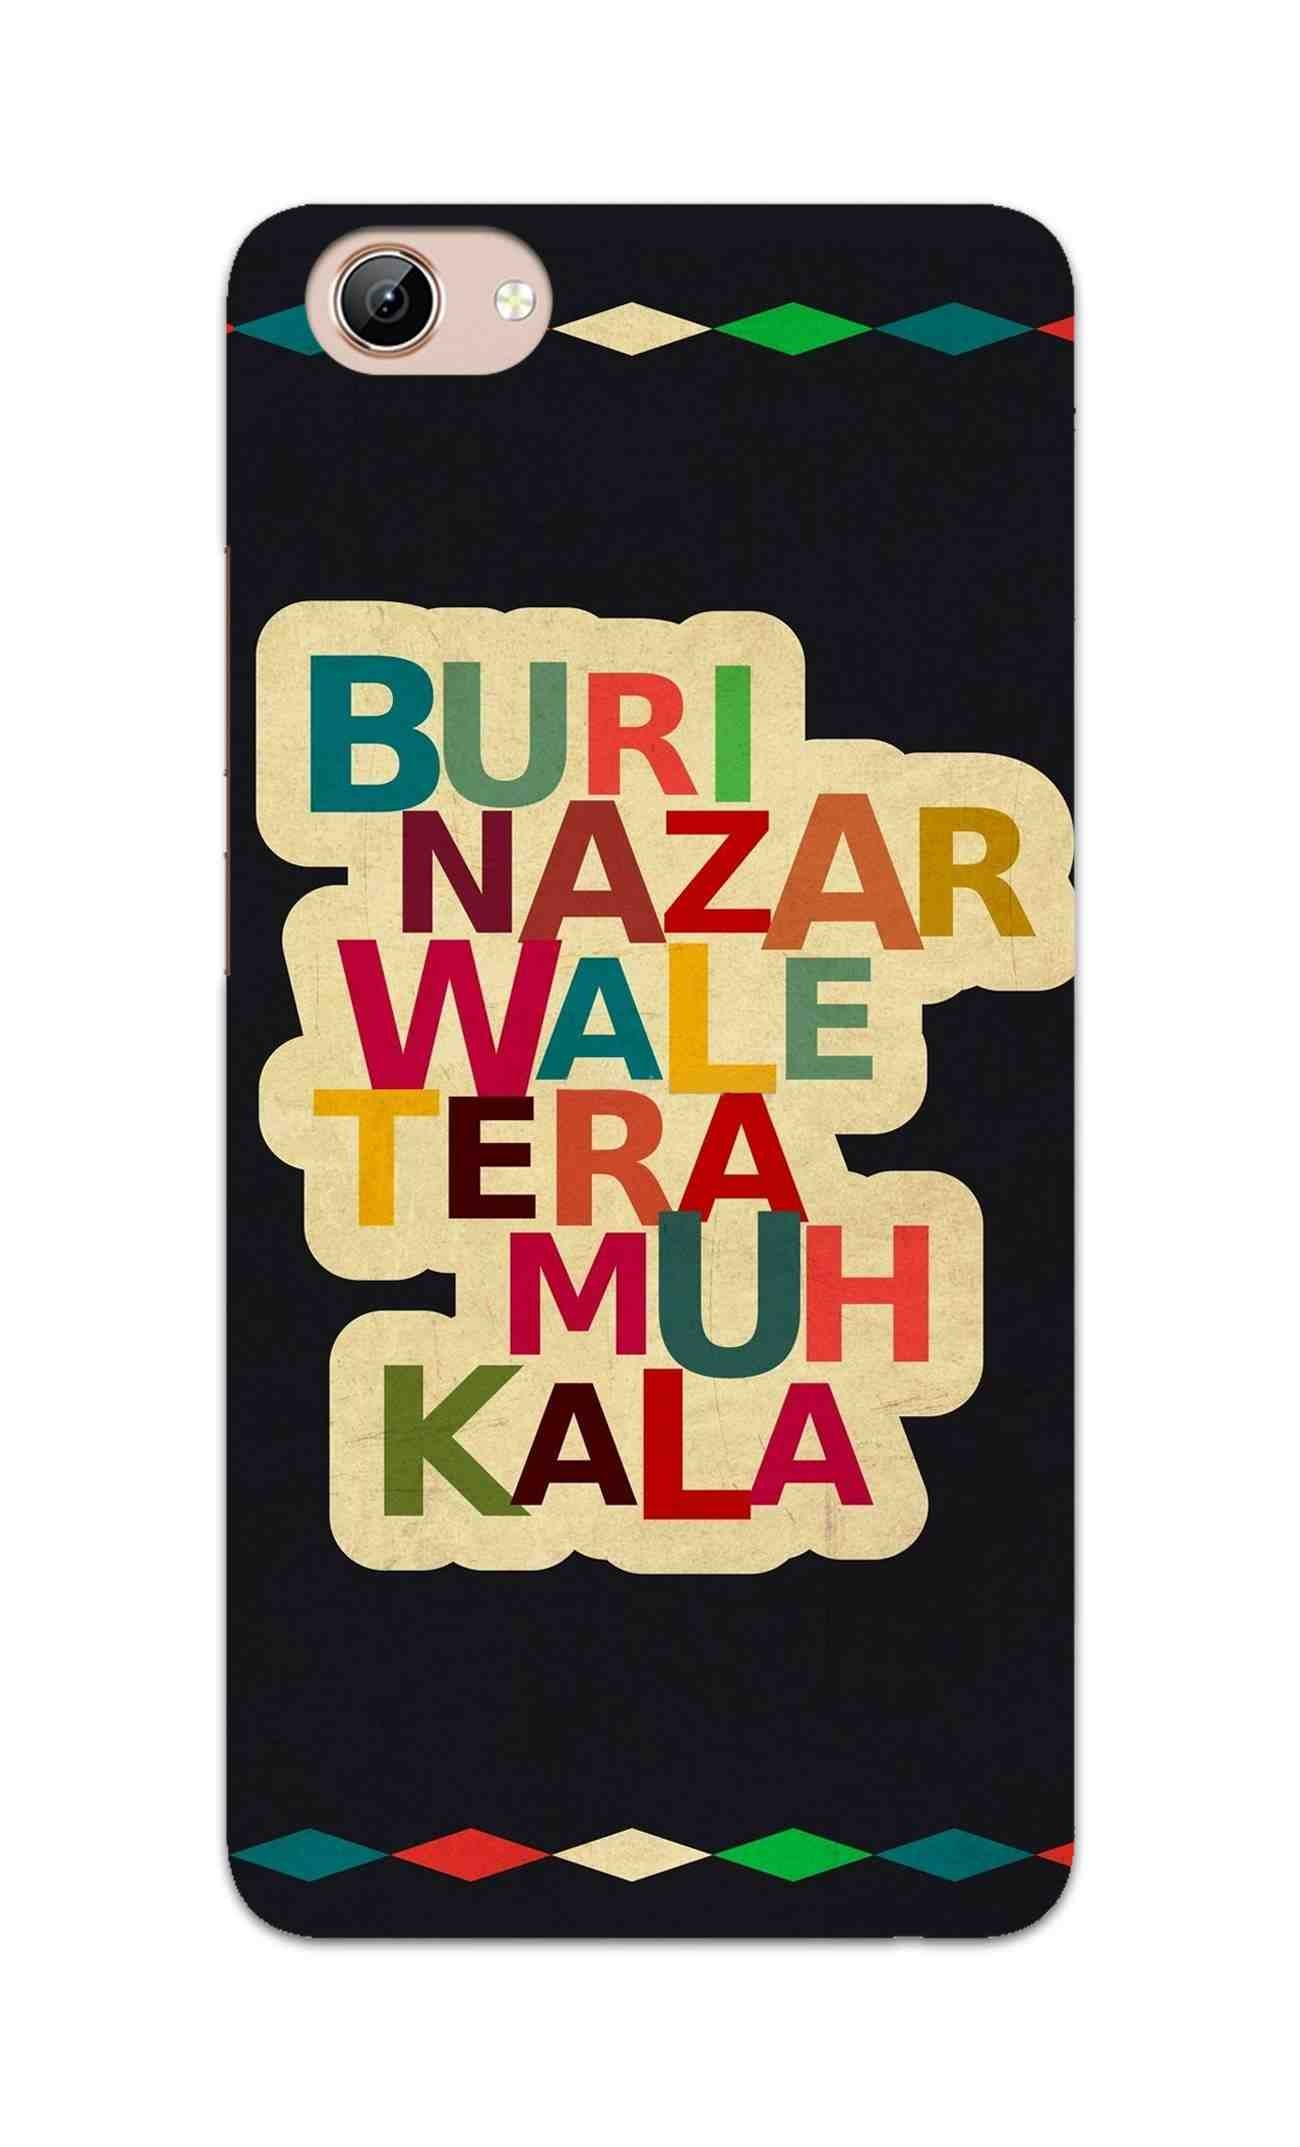 Buri Nazar Wale Tera Muh Kala Indian Typography Vivo Y71 Mobile Cover Case - MADANYU